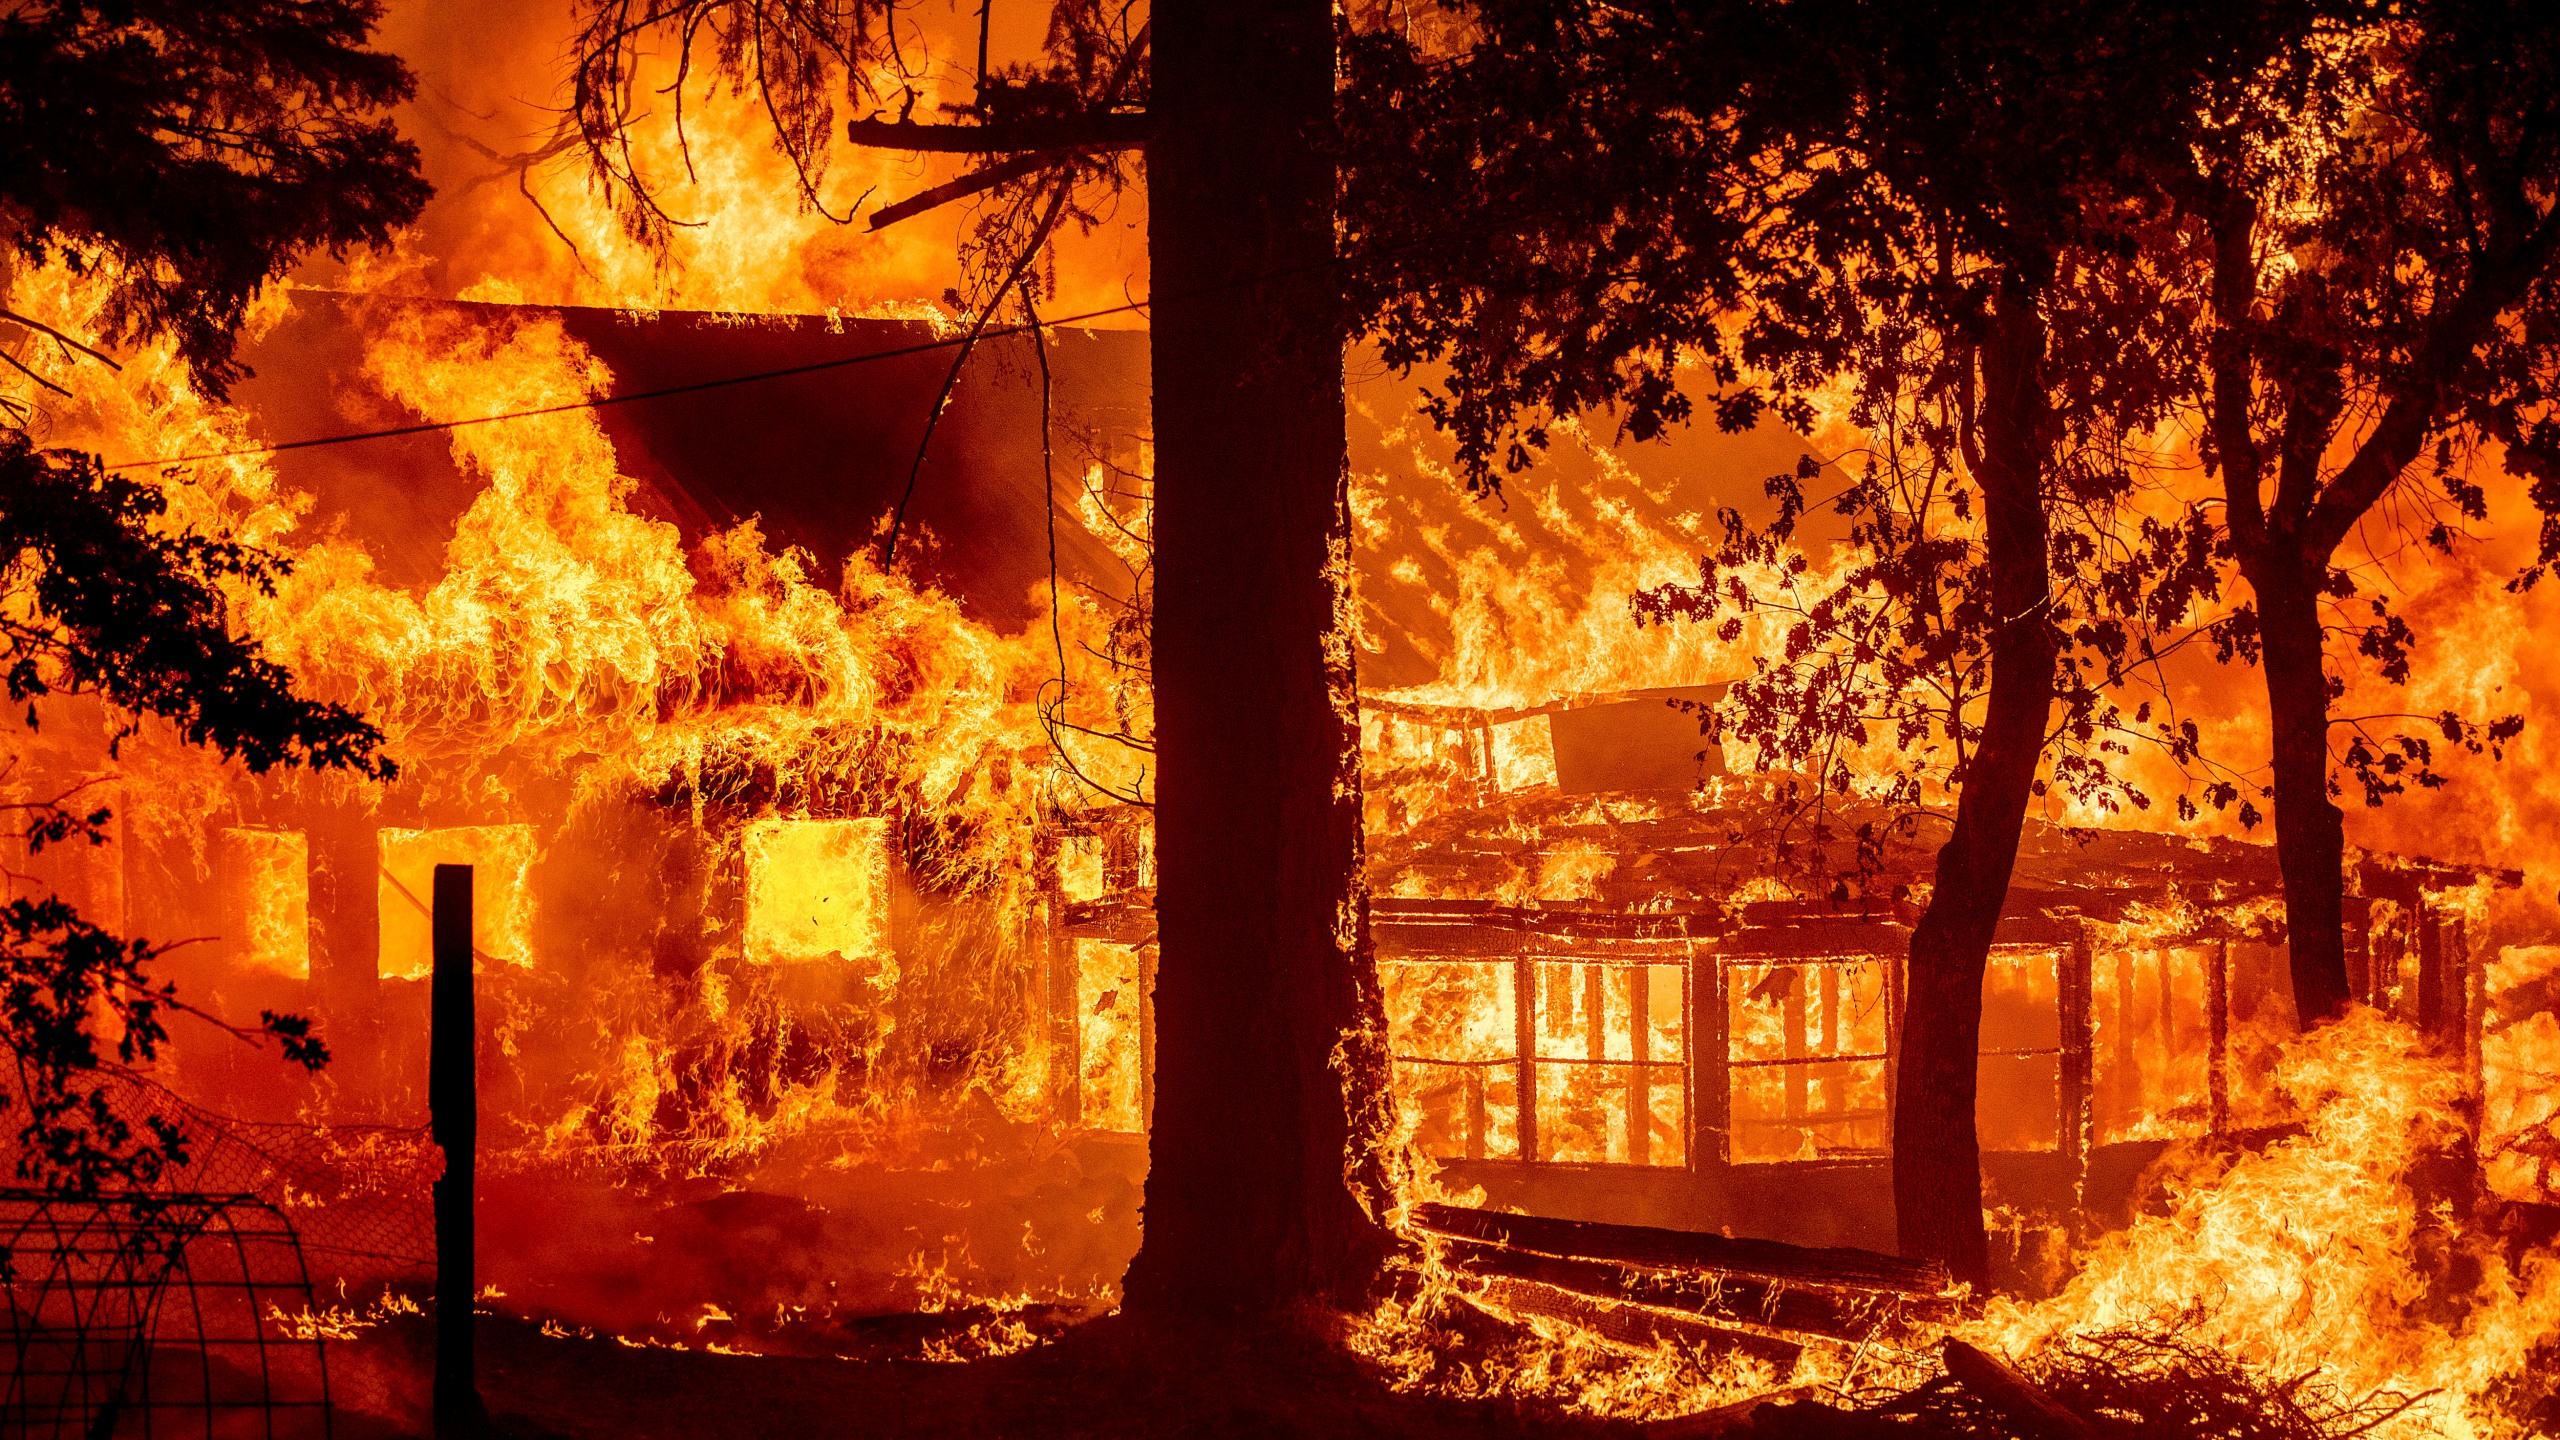 Flames from the Dixie Fire consume a home in the Indian Falls community of Plumas County, Calif., Saturday, July 24, 2021. (AP Photo/Noah Berger)